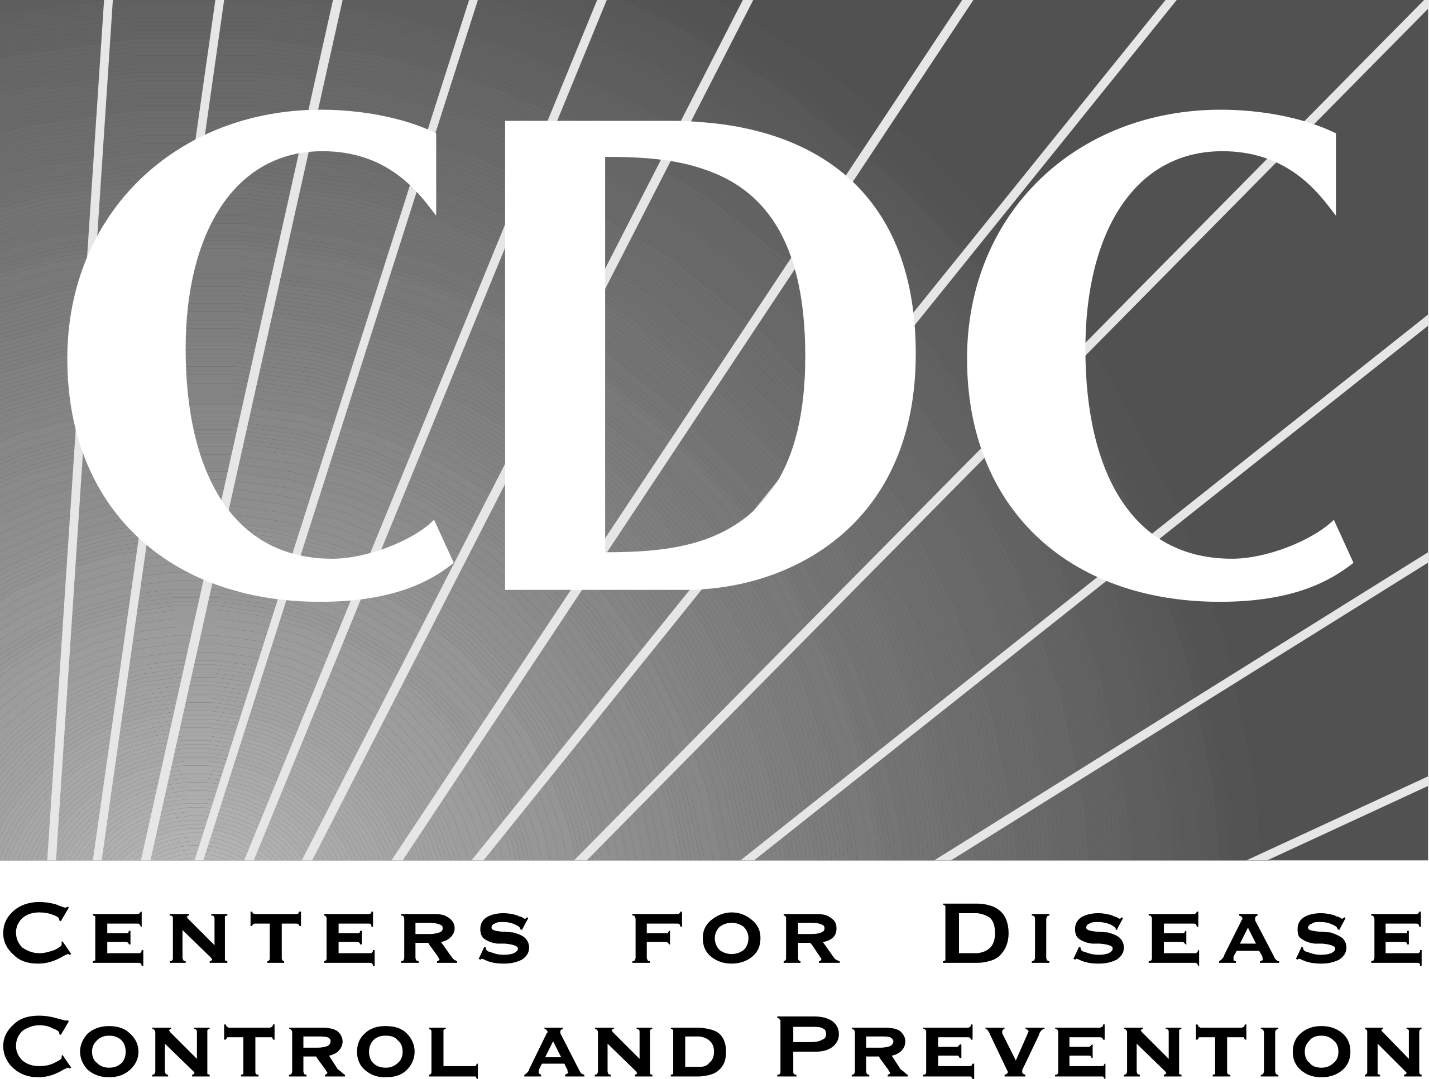 Logo for the Centers for Disease Control and Prevention